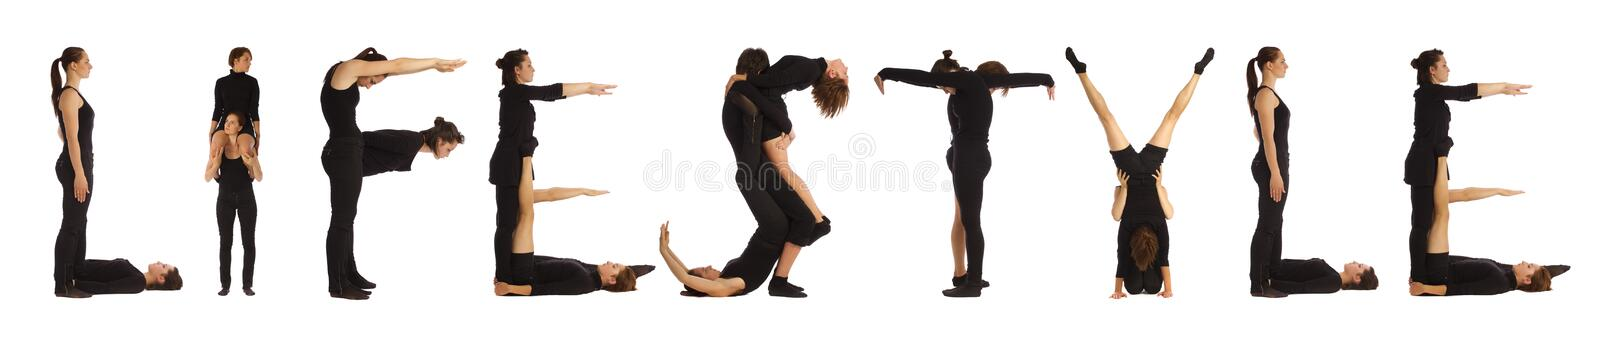 Black dressed people forming LIFESTYLE word. Over white background royalty free stock photography